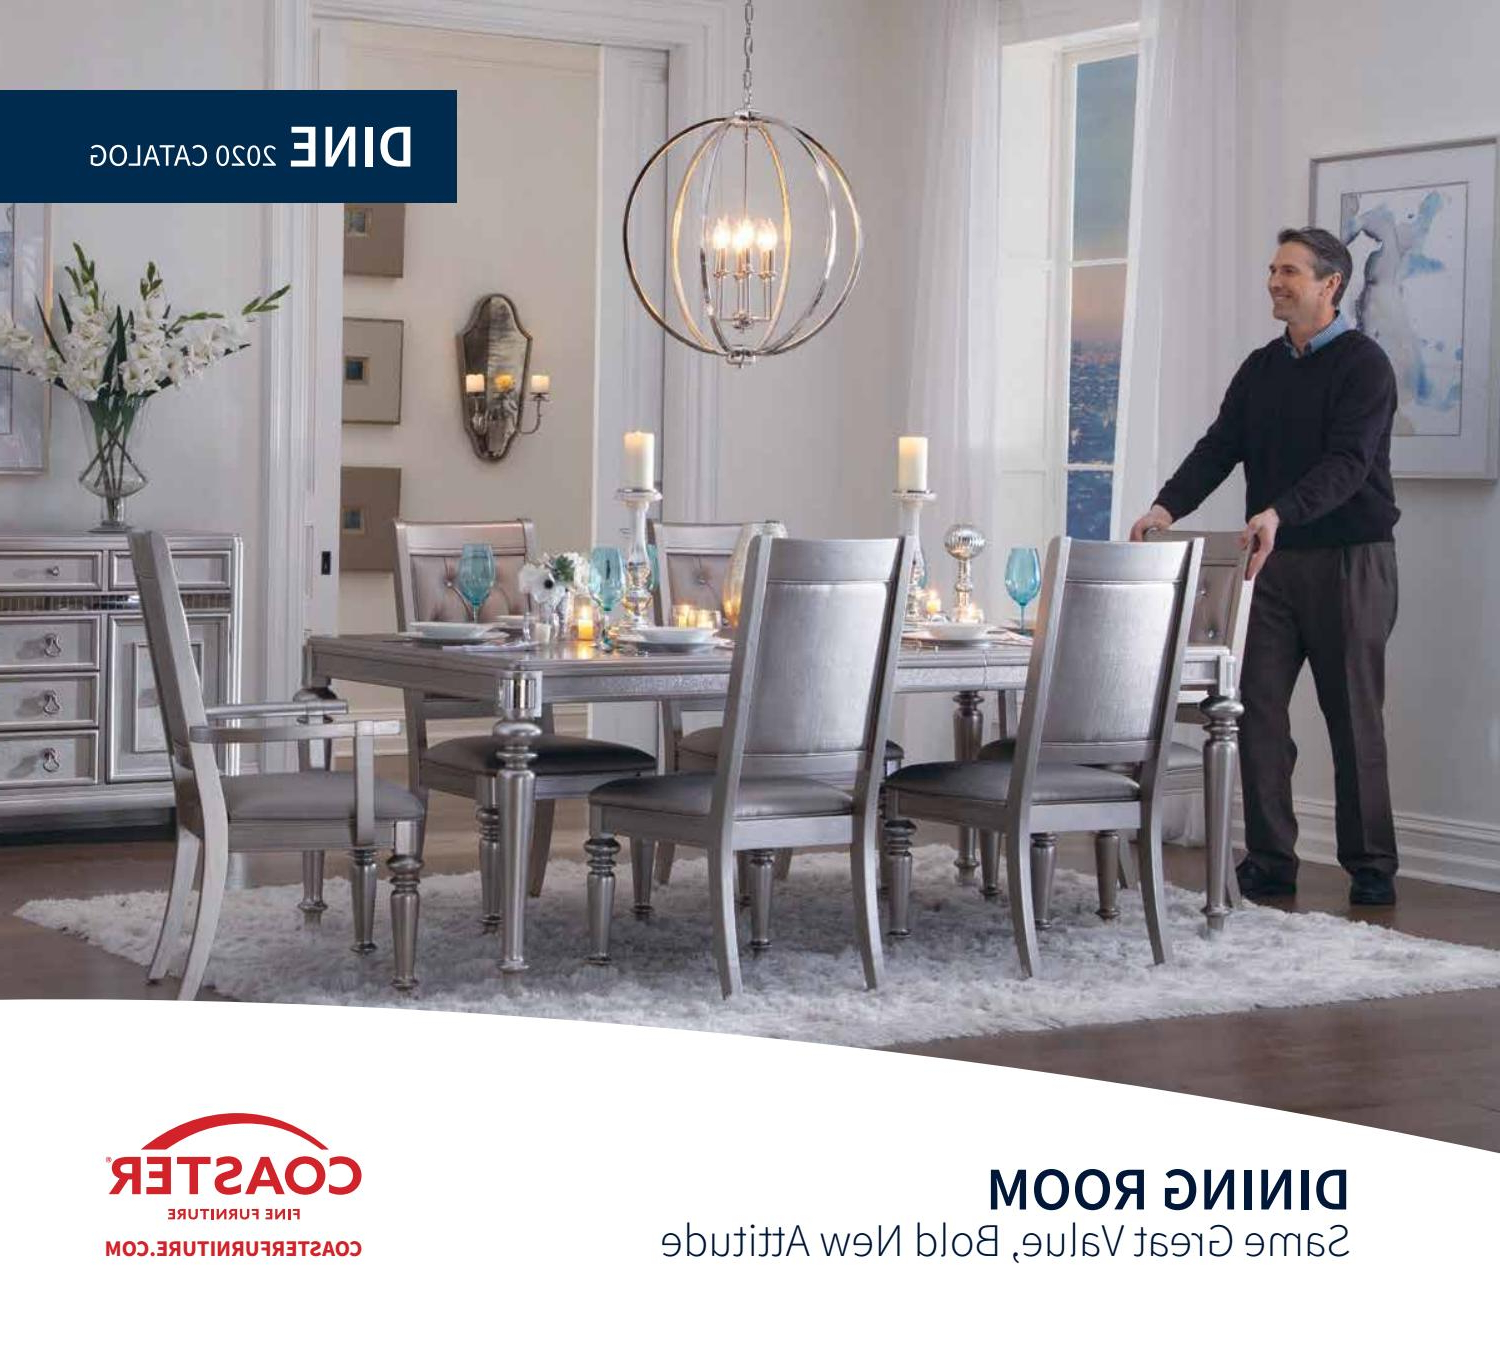 2019 2020 Coaster Catalog Dinecoaster Company Of America - Issuu with regard to Transitional 4-Seating Drop Leaf Casual Dining Tables